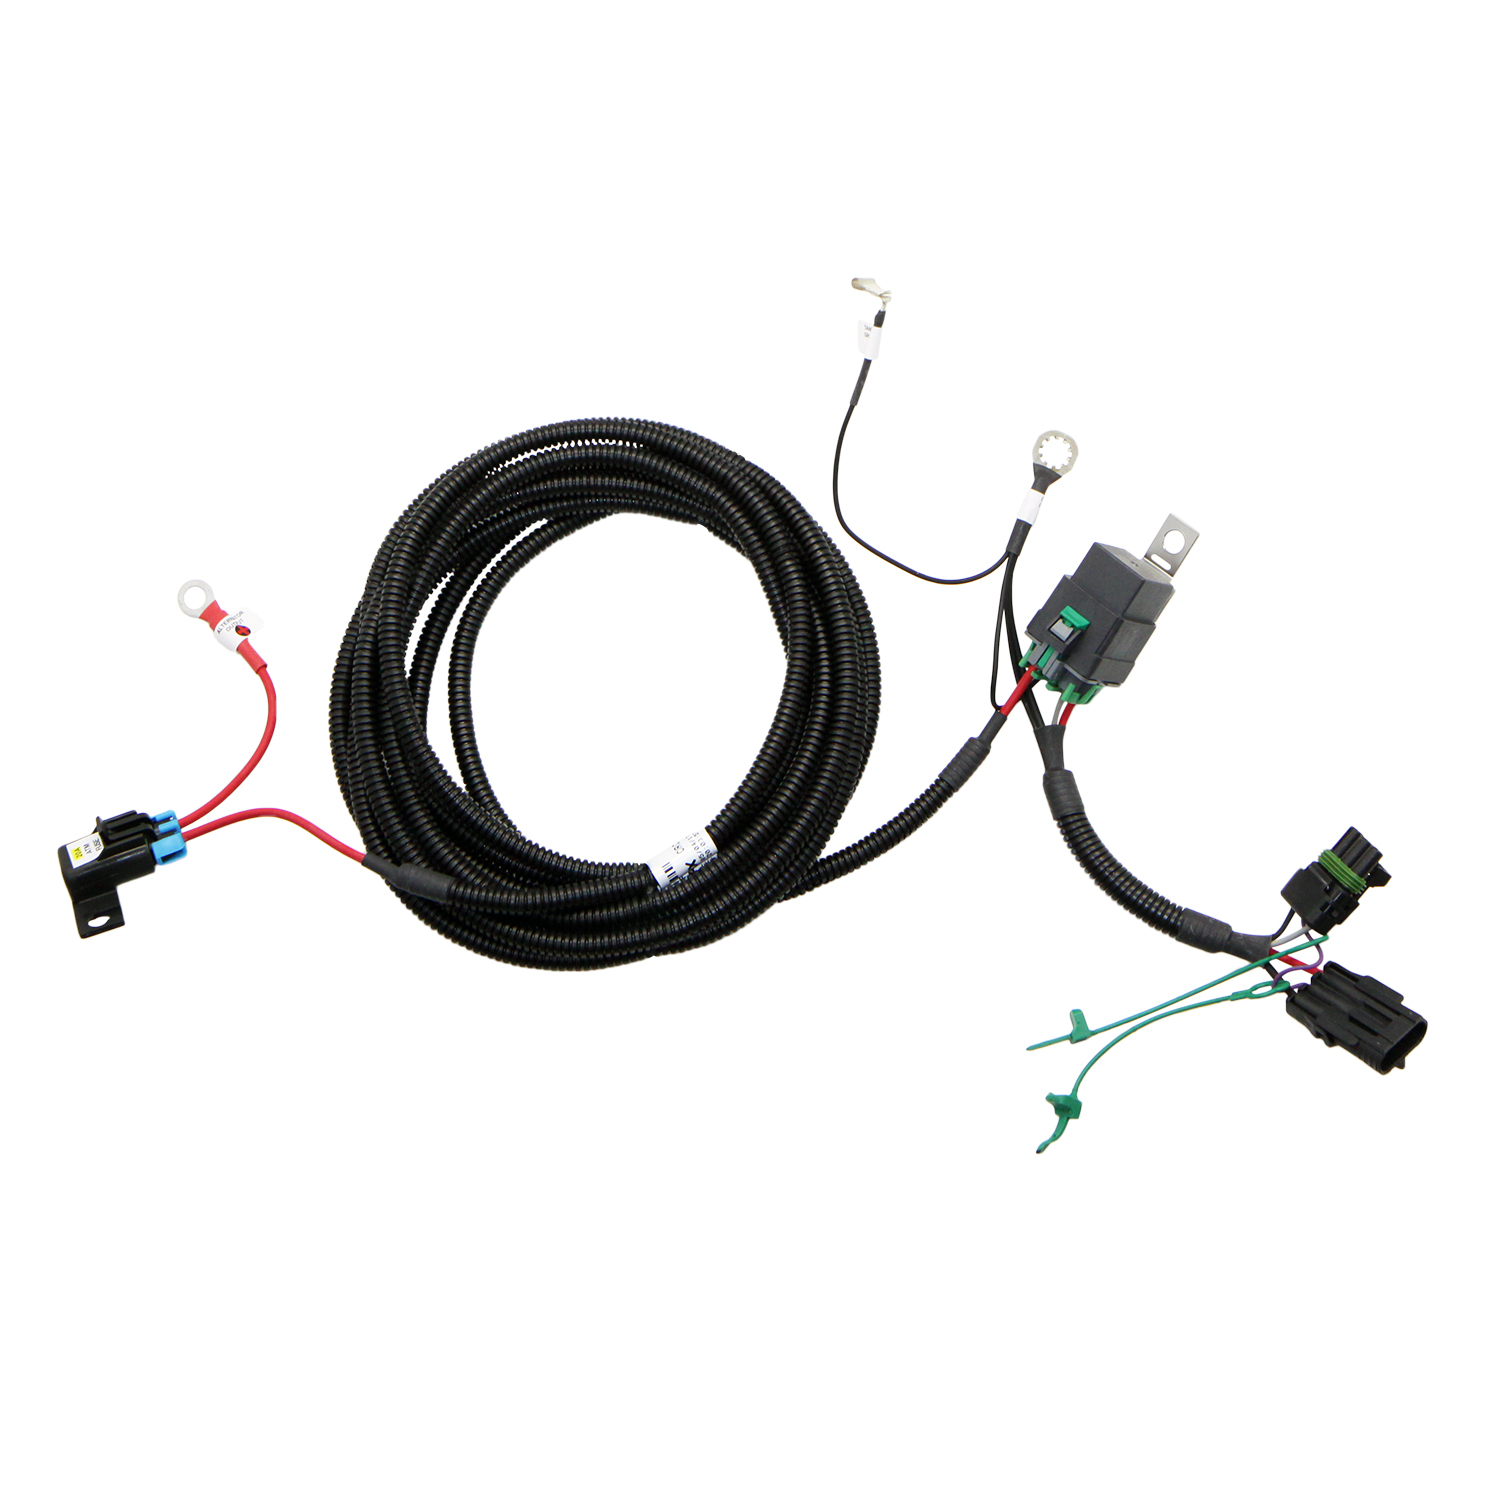 Dual Fuel Pump Wiring Harness For Boost | Wiring Diagram Gm Fuel Pump Wiring Harness on gm window switch wiring, gm fuel lines, gm a/c compressor wiring, gm tail light wiring, gm fuel gauge wiring,